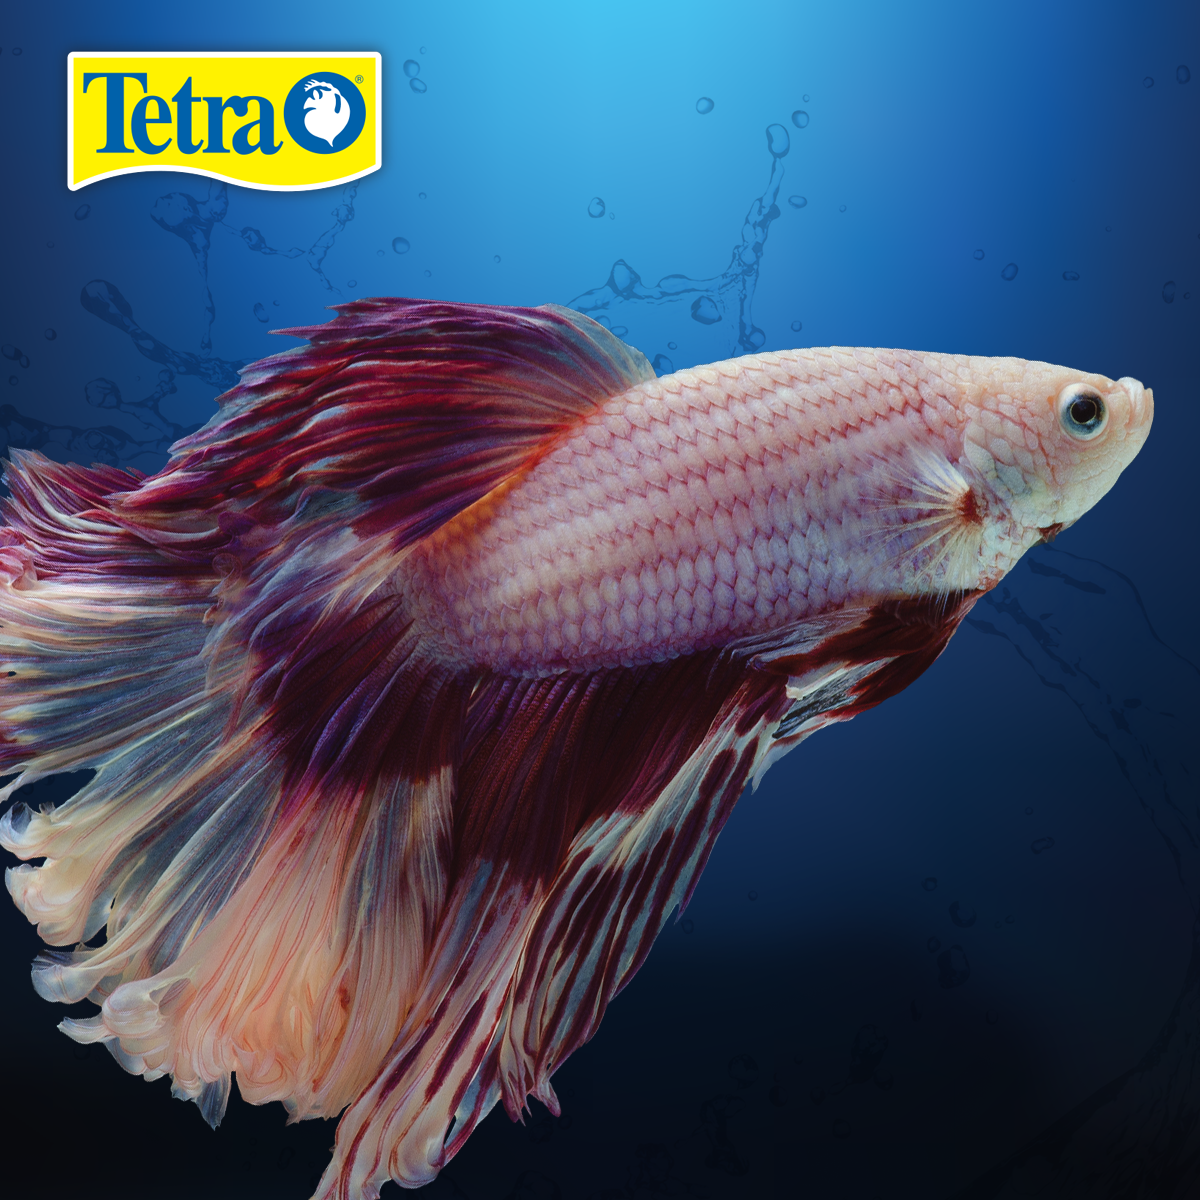 The Breathtaking Betta Is A Great Starter Fish Relatively Easy To Care For Fancy Tailed Bettas Can Bring Brilliance To Your Home O Betta Fish Care Tetra Fish